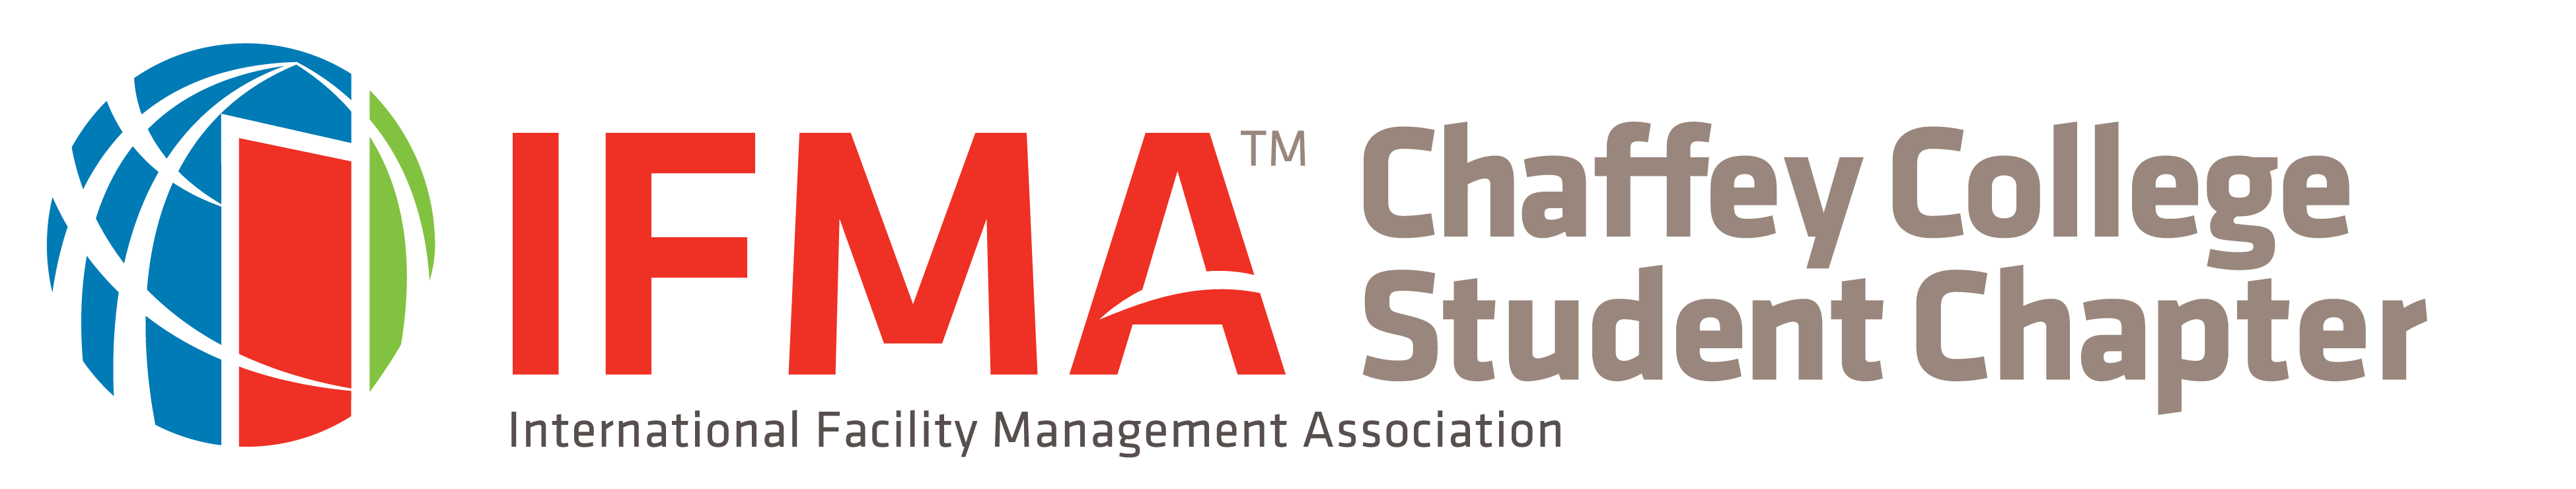 IFMA CHAFFEY COLLEGE CHAPTER